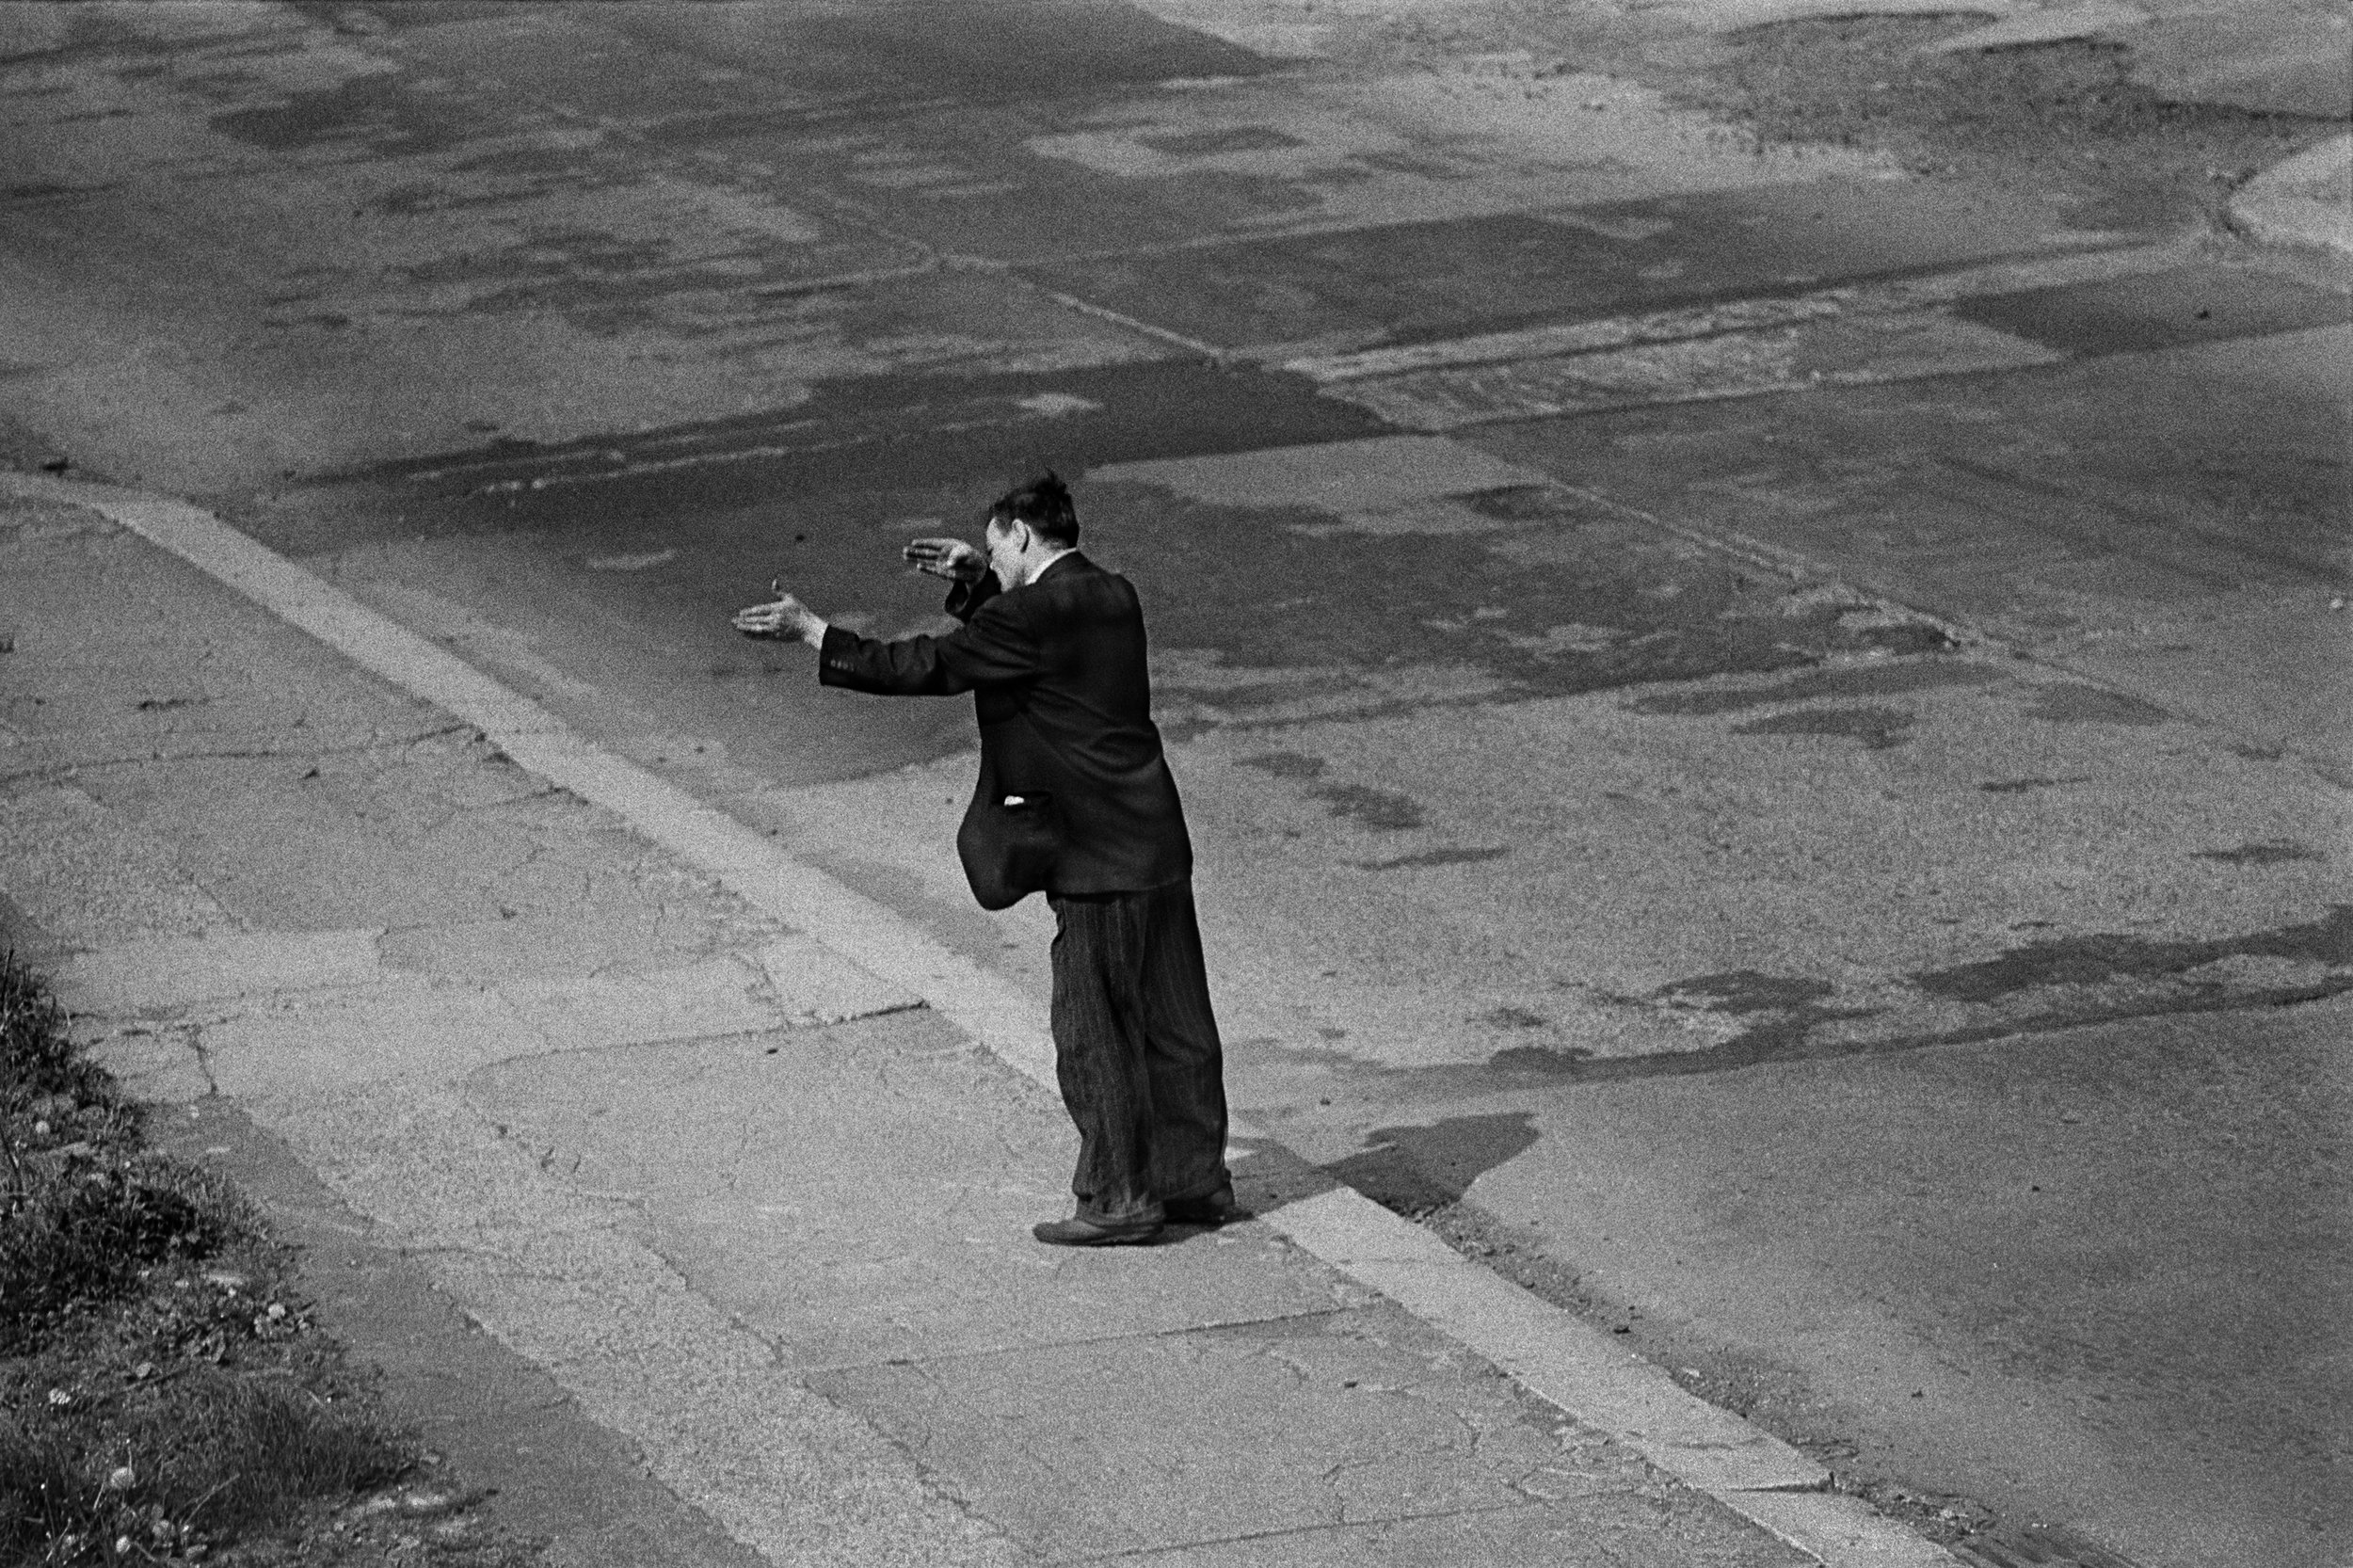 Man Gesturing in Demolished Street, 1971